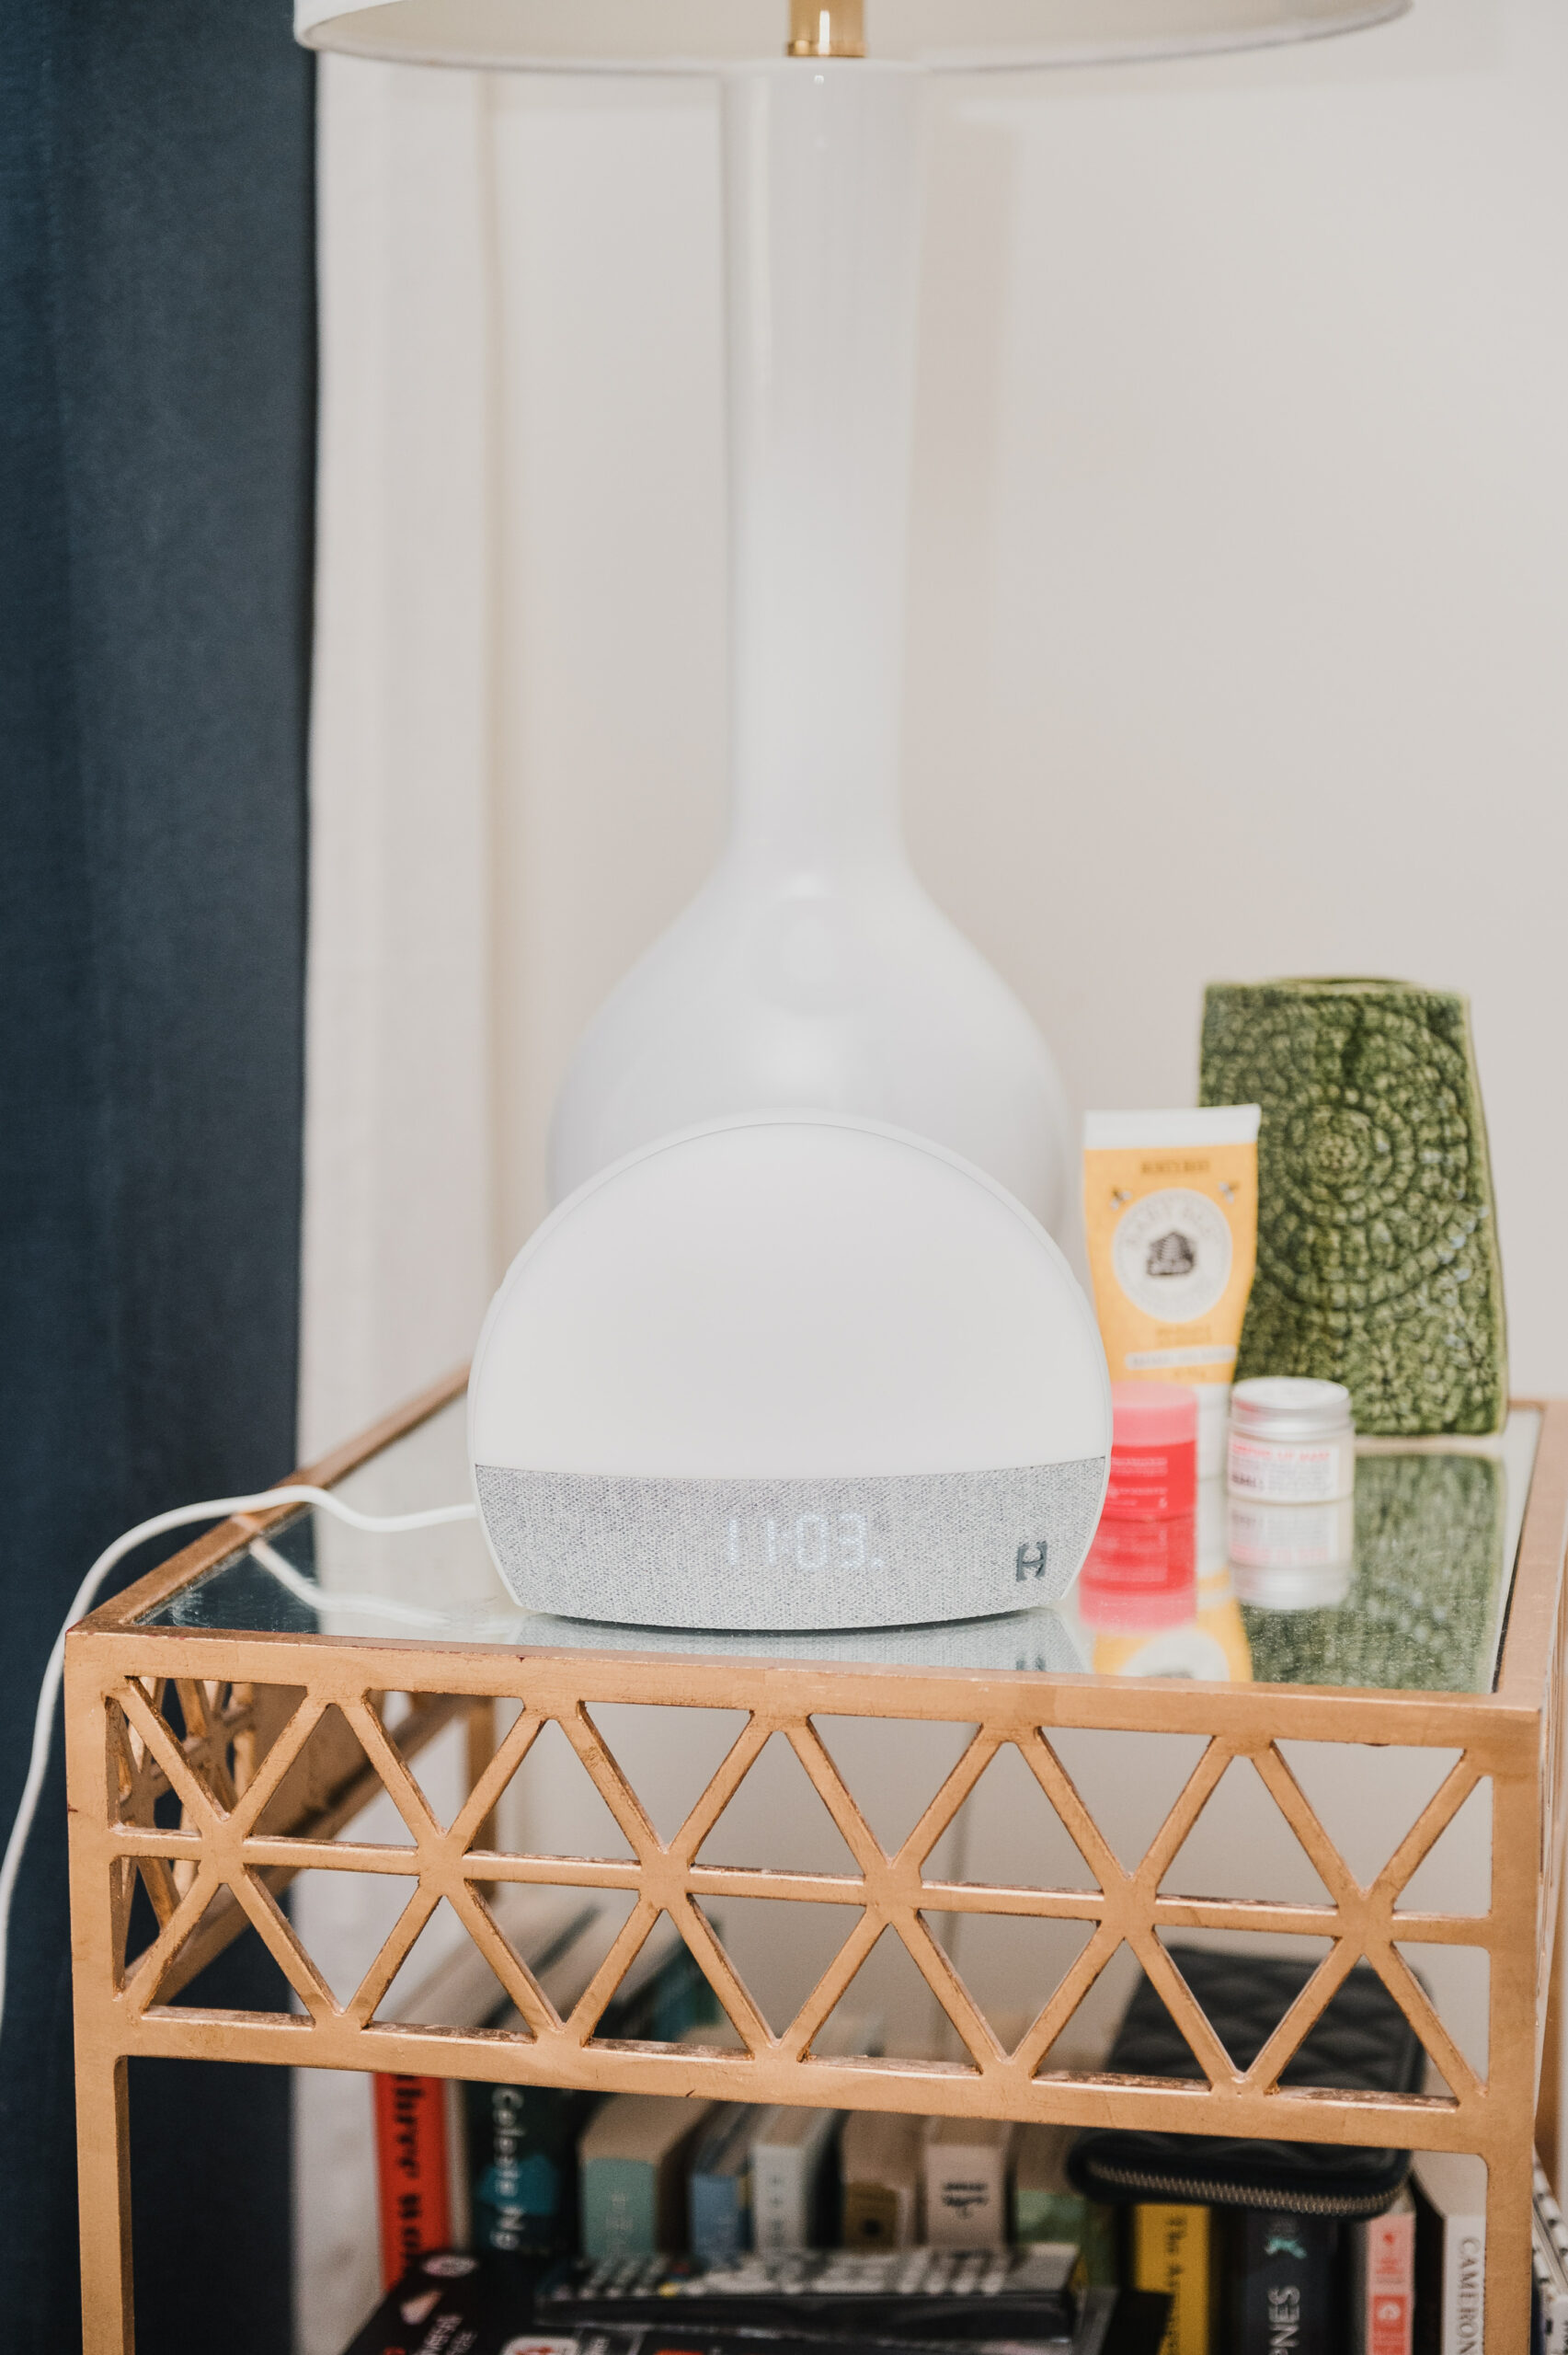 bedside table with Hatch Restore, lamp, skincare products, and books